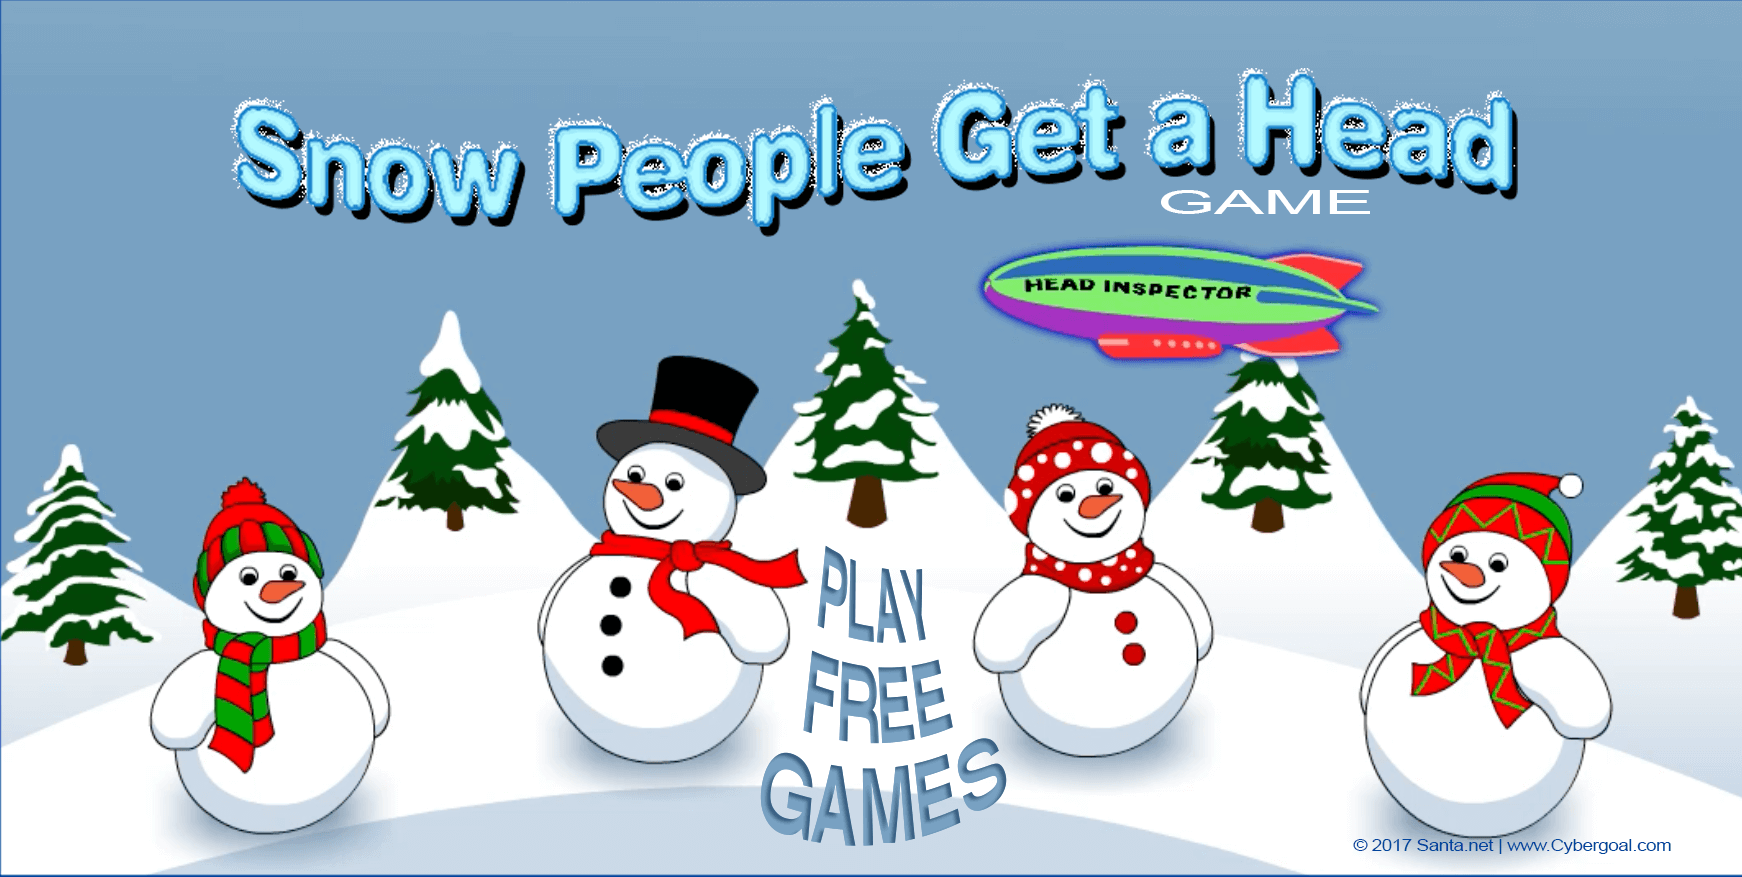 Play FREE Santa Claus Games on any device or browser on Santa.net.